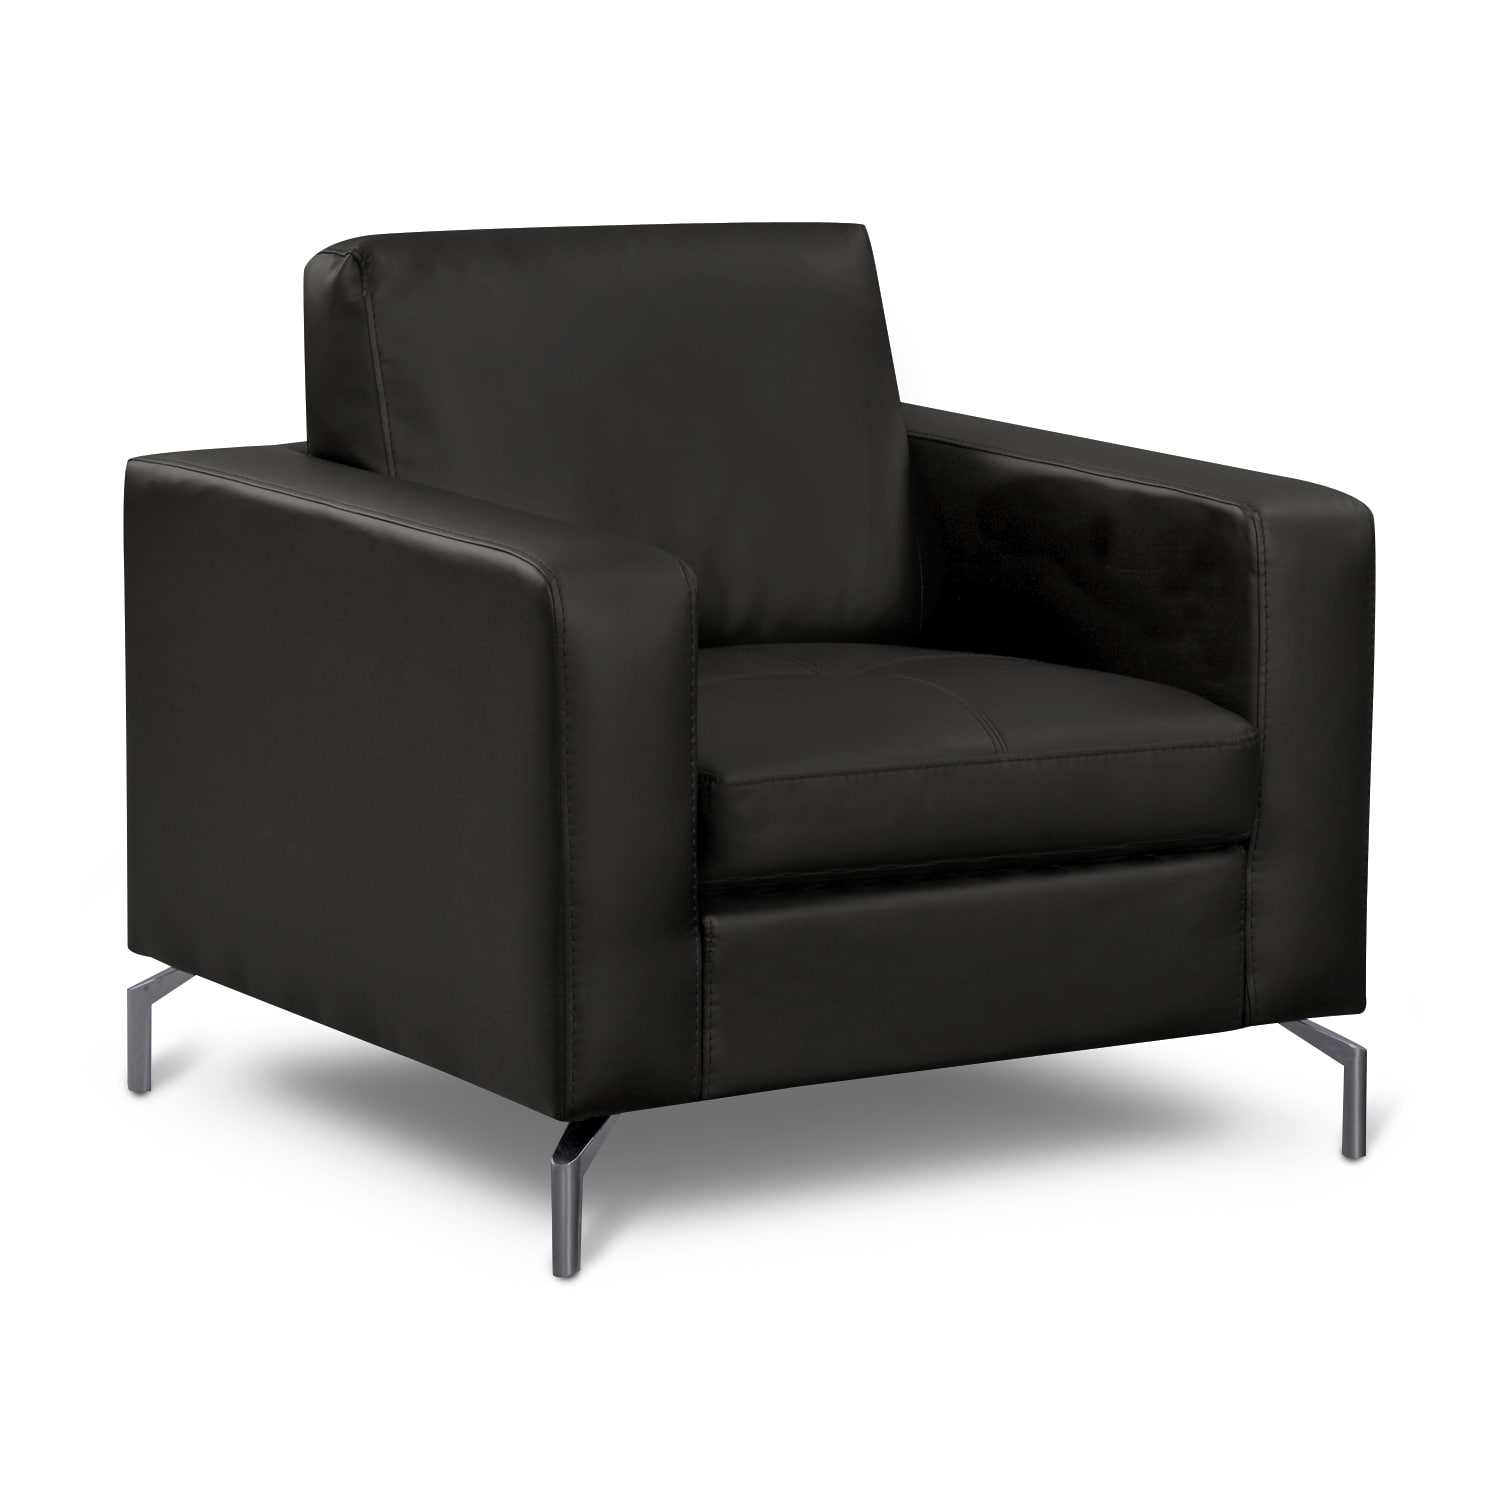 Living Room Furniture - Mirage Black Chair